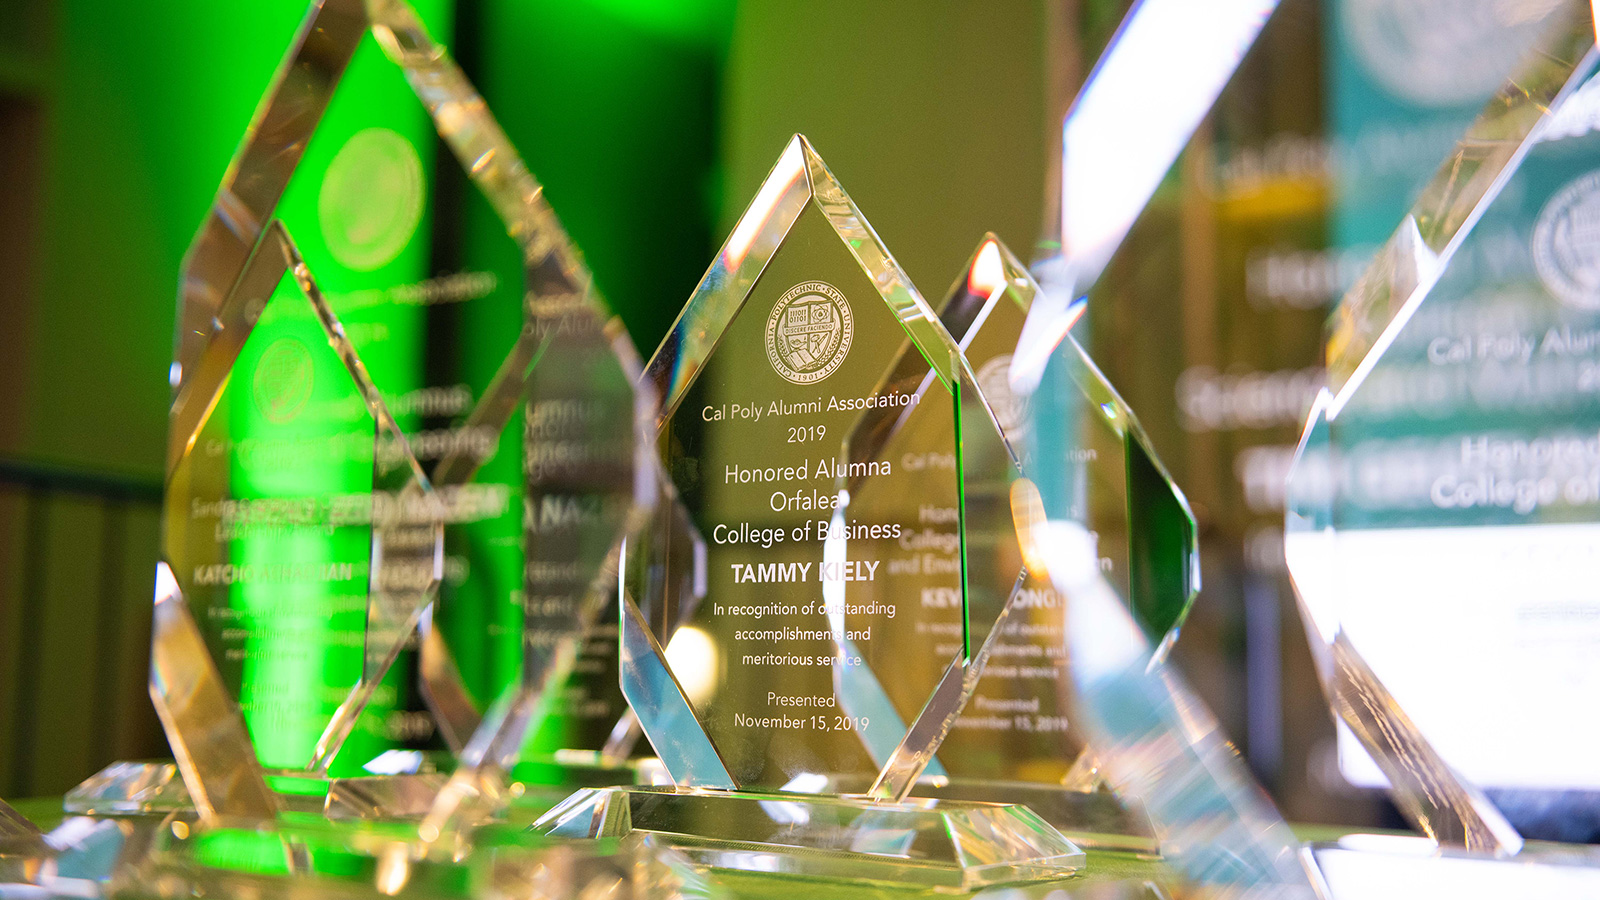 A group of clear glass awards on a table, backlit with green and white light